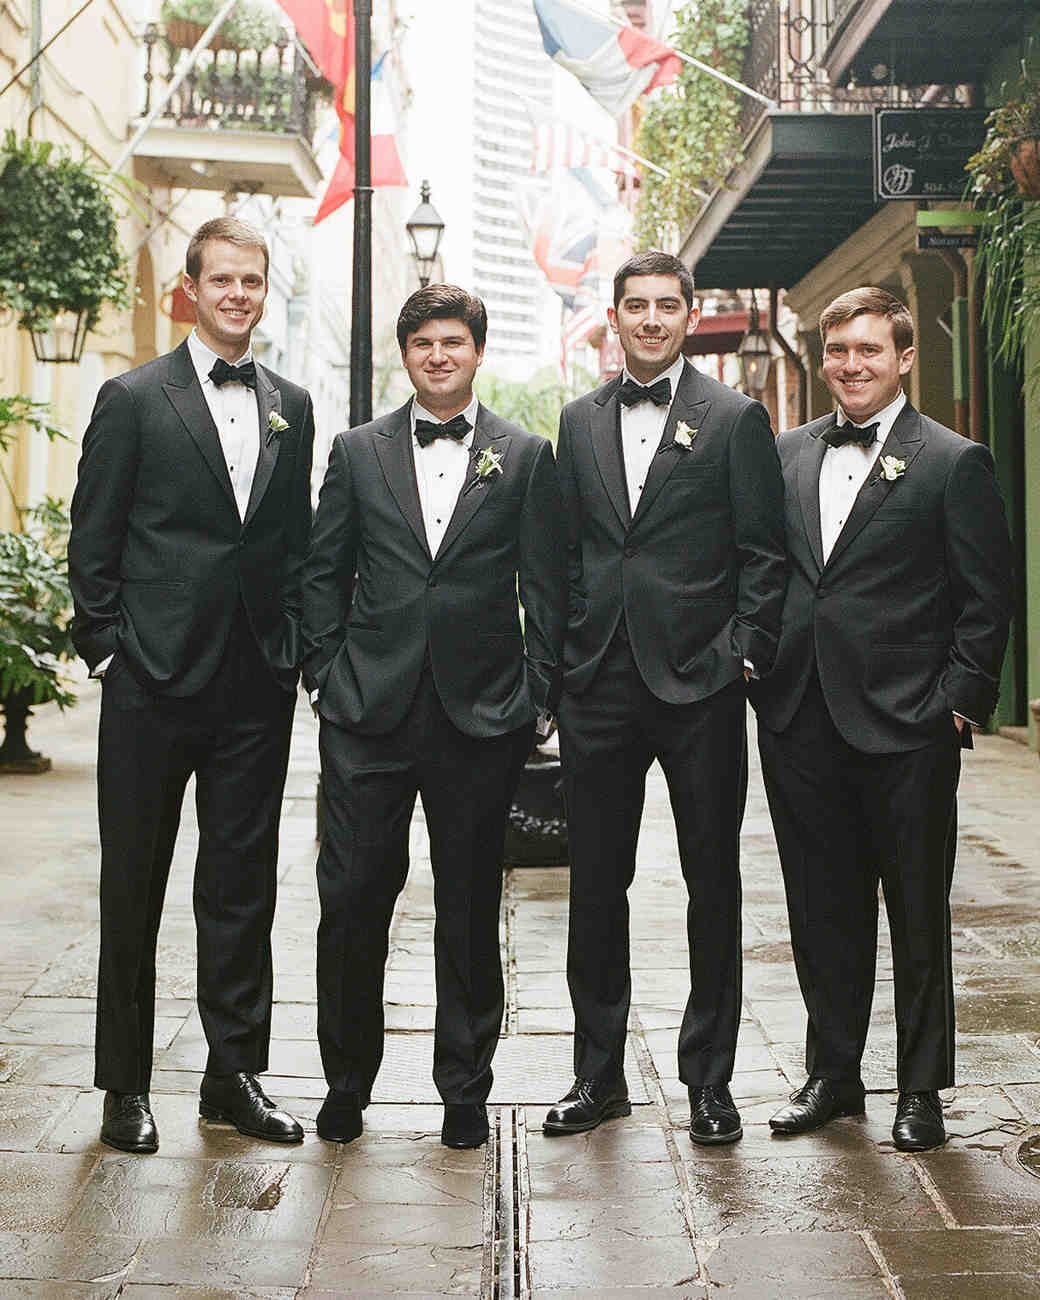 haylie brad wedding groomsmen